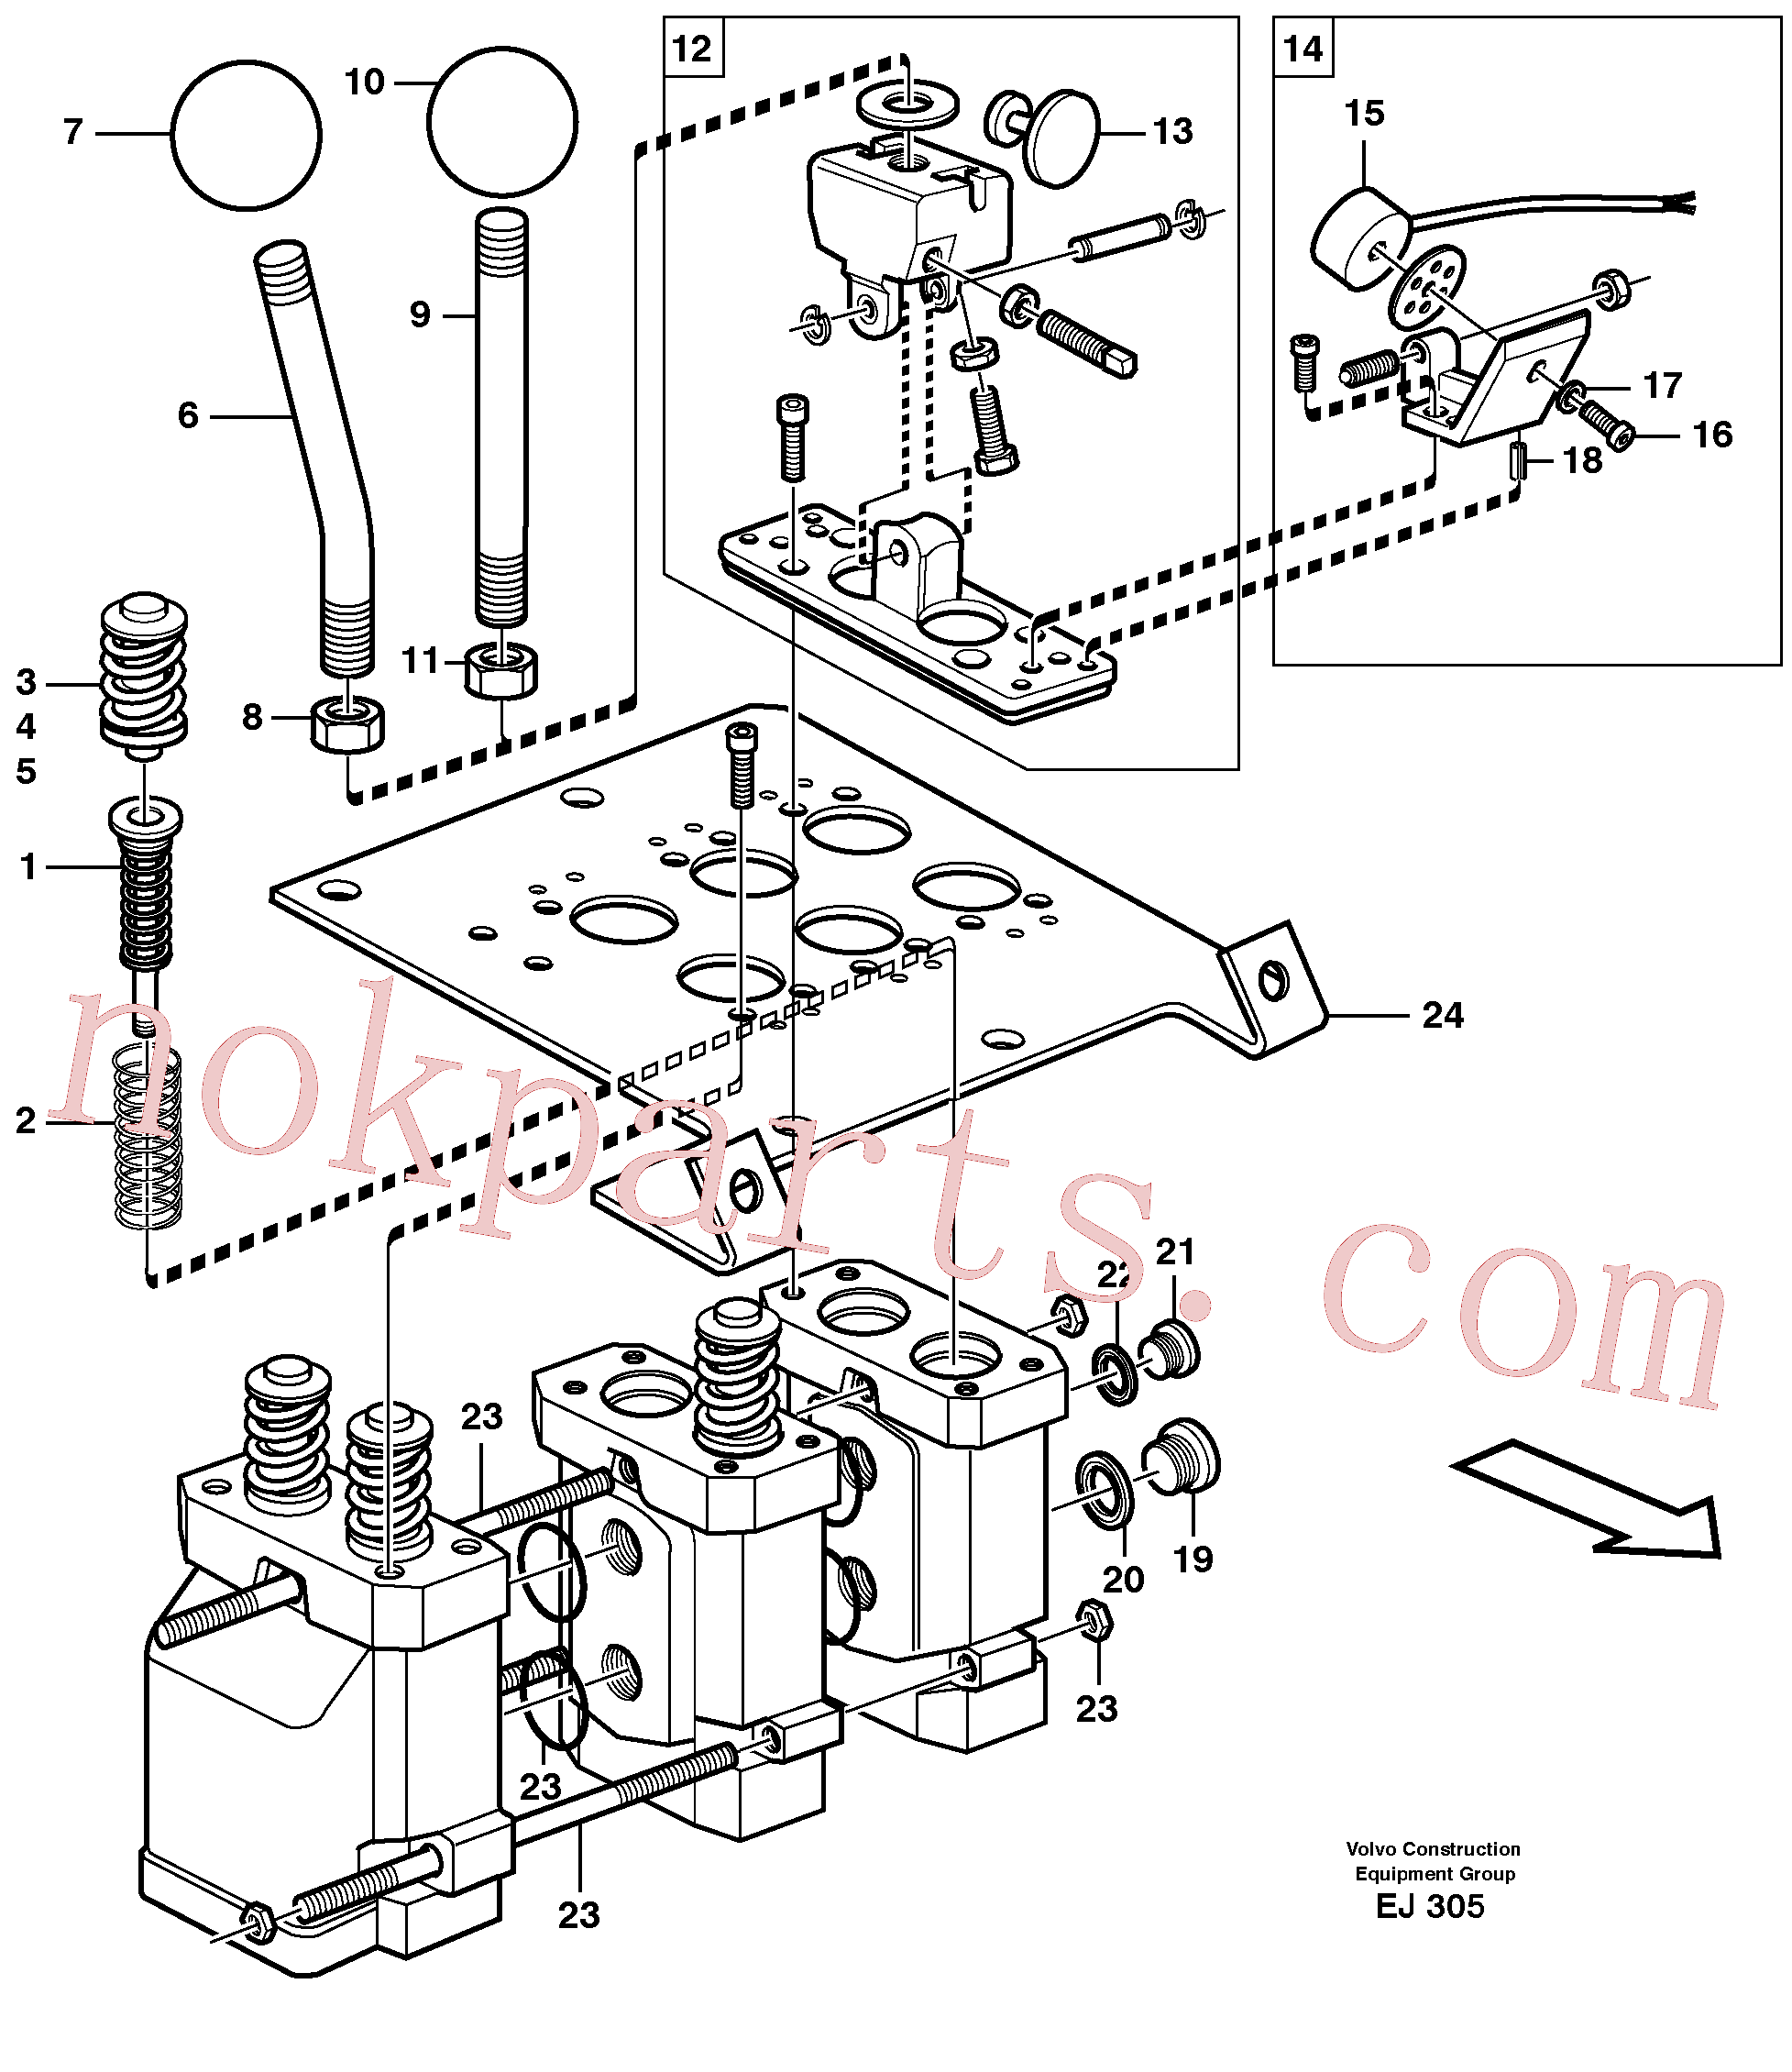 VOE11999448 for Volvo Servo valve(EJ305 assembly)